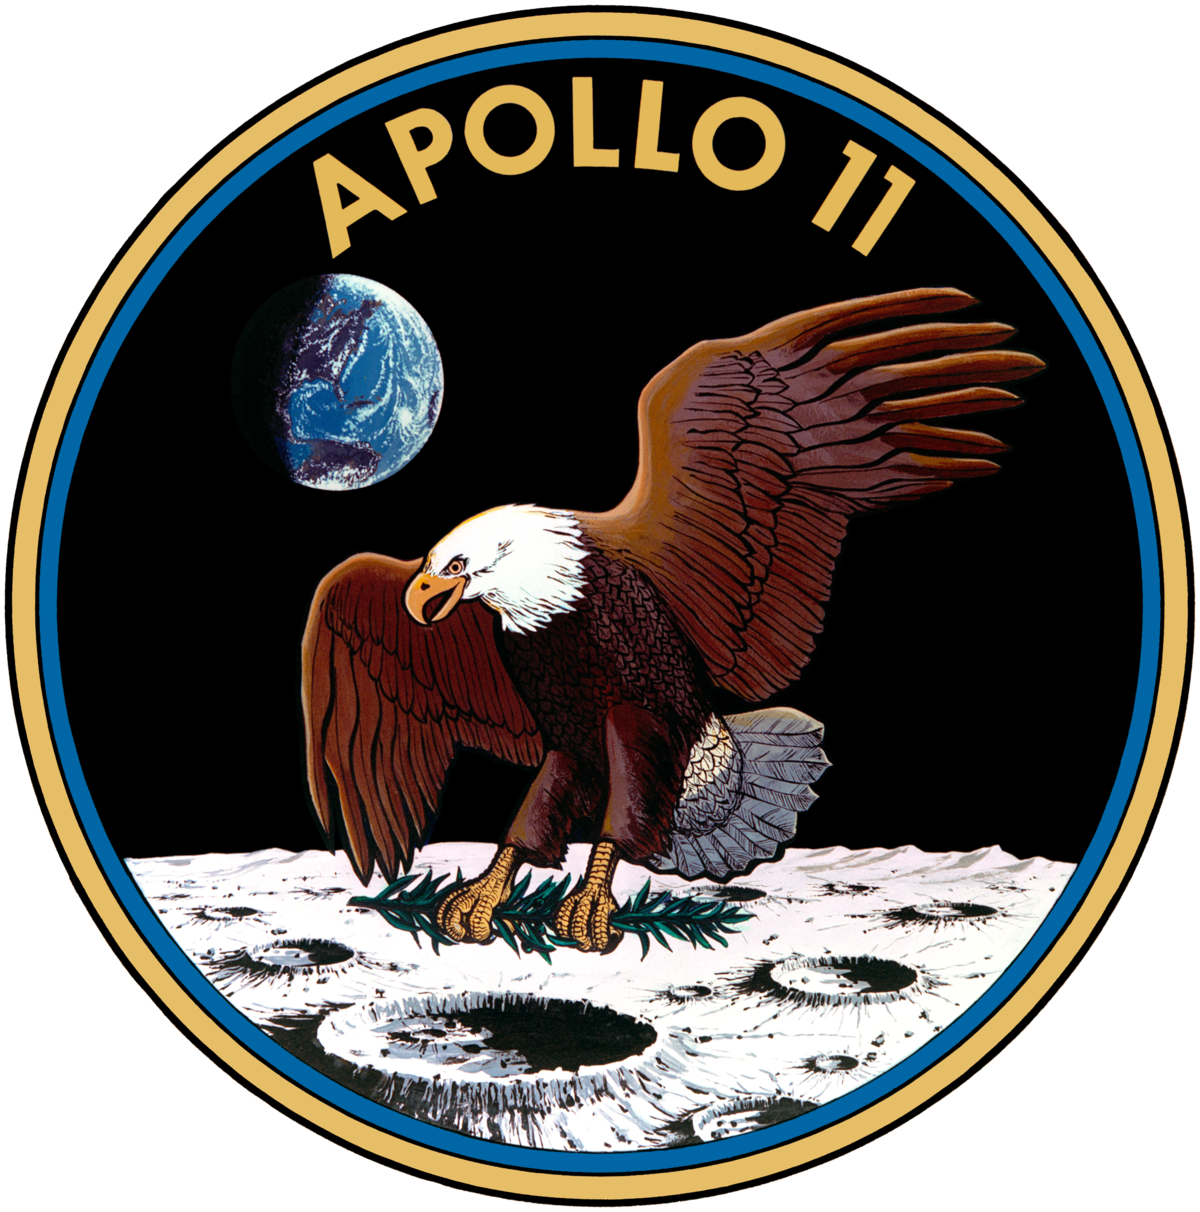 https://upload.wikimedia.org/wikipedia/commons/thumb/2/27/Apollo_11_insignia.png/1200px-Apollo_11_insignia.png